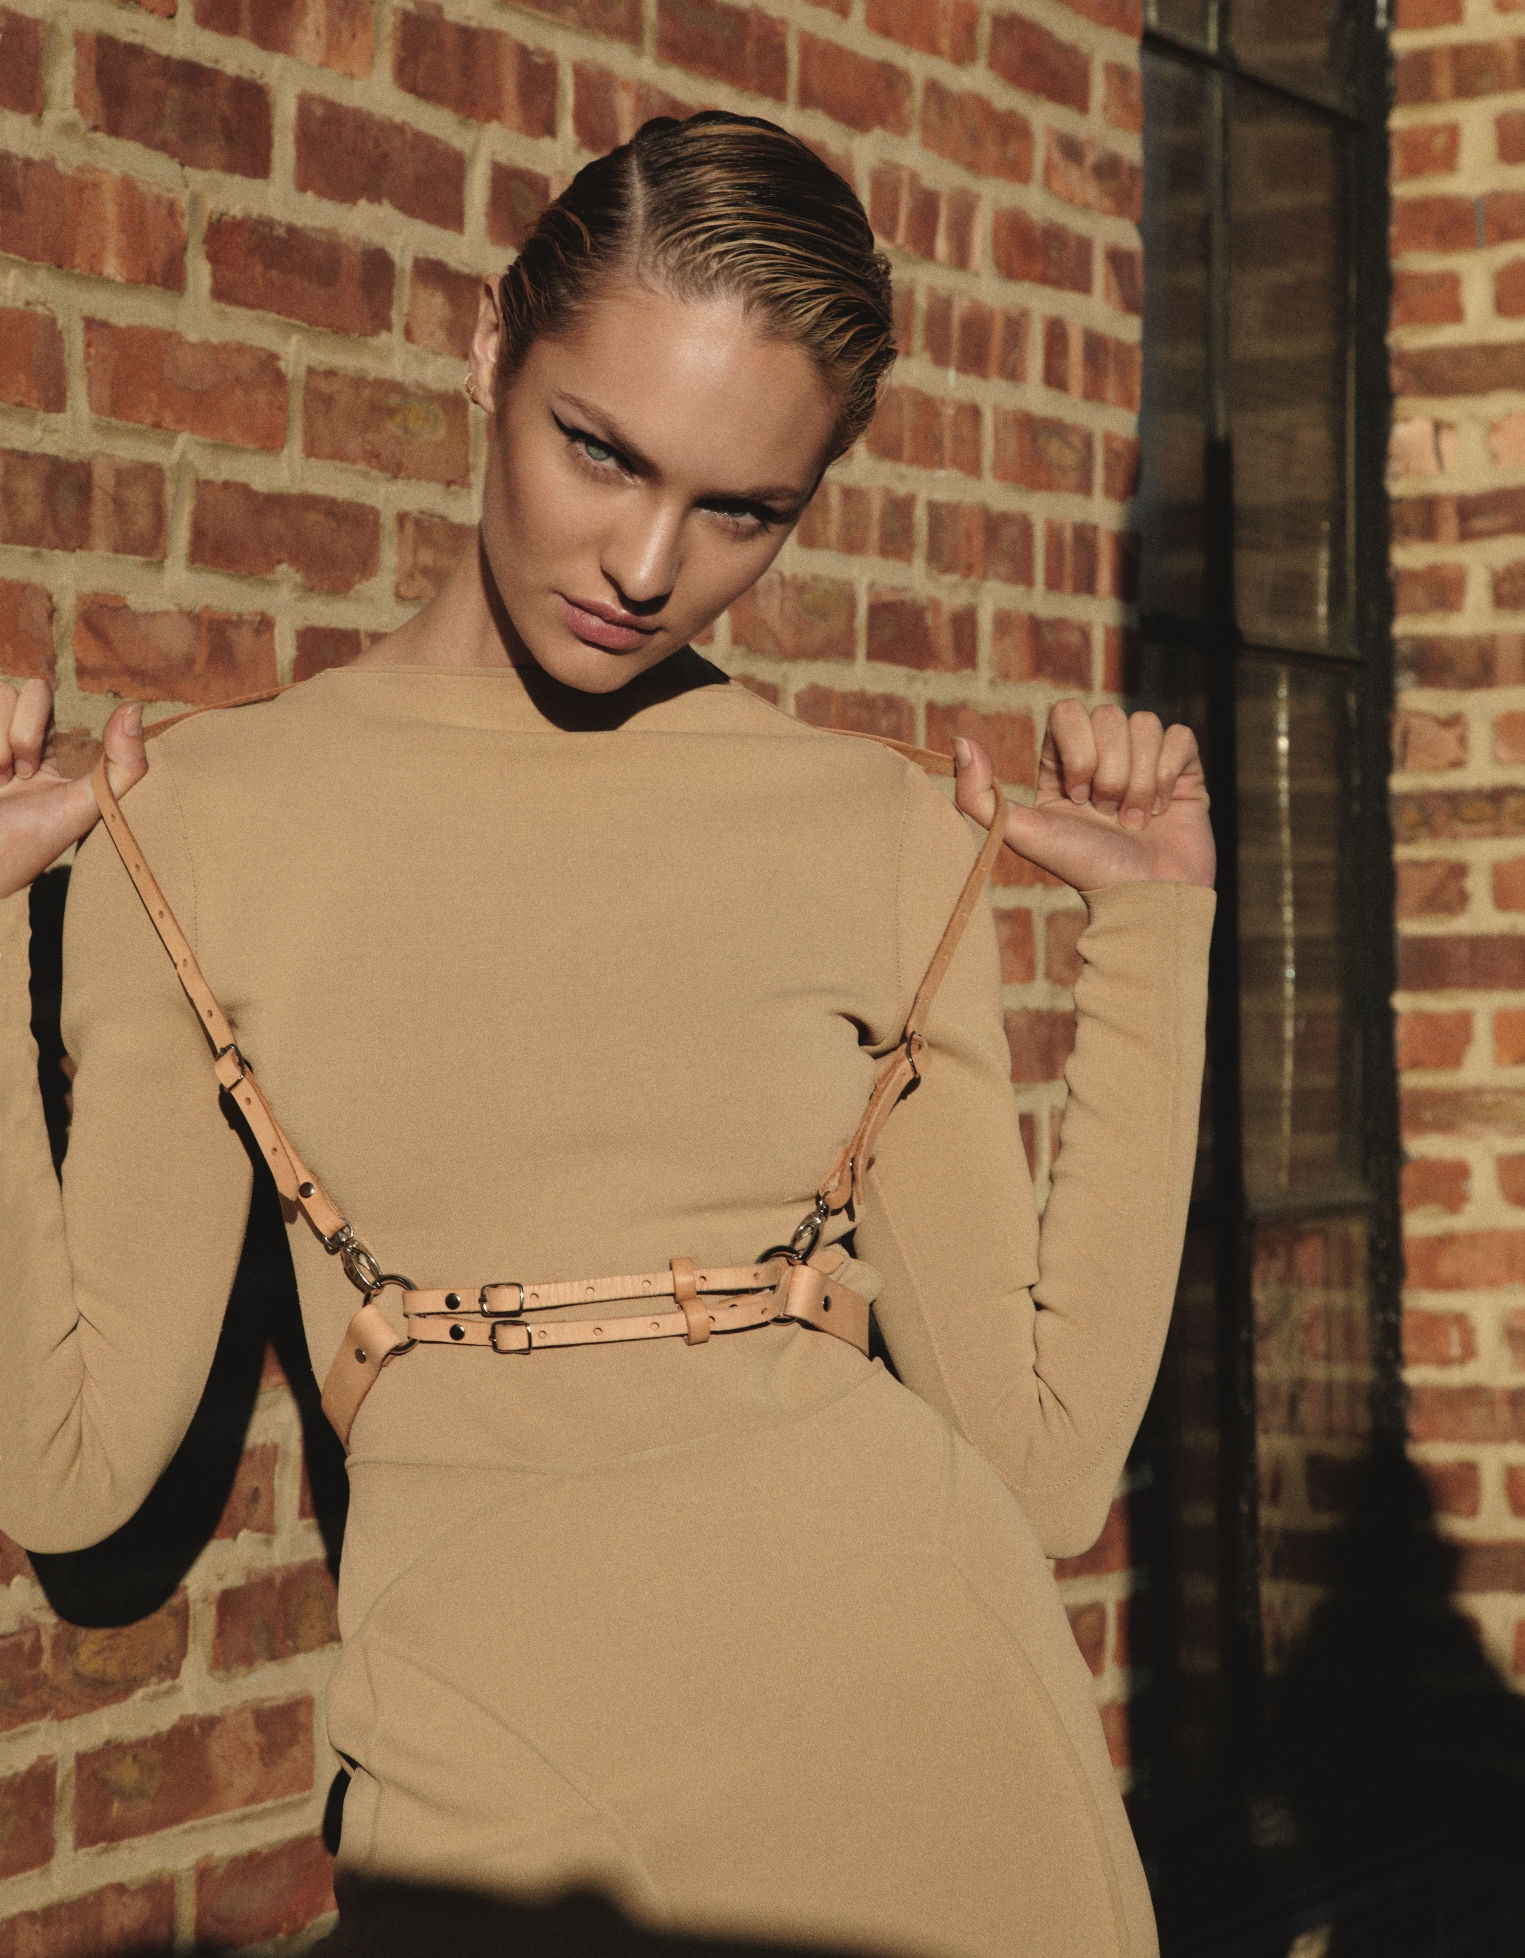 Candice Swanepoel 2012 : candice-swanepoel-collier-schorr-photoshoot-for-muse-magazine-17